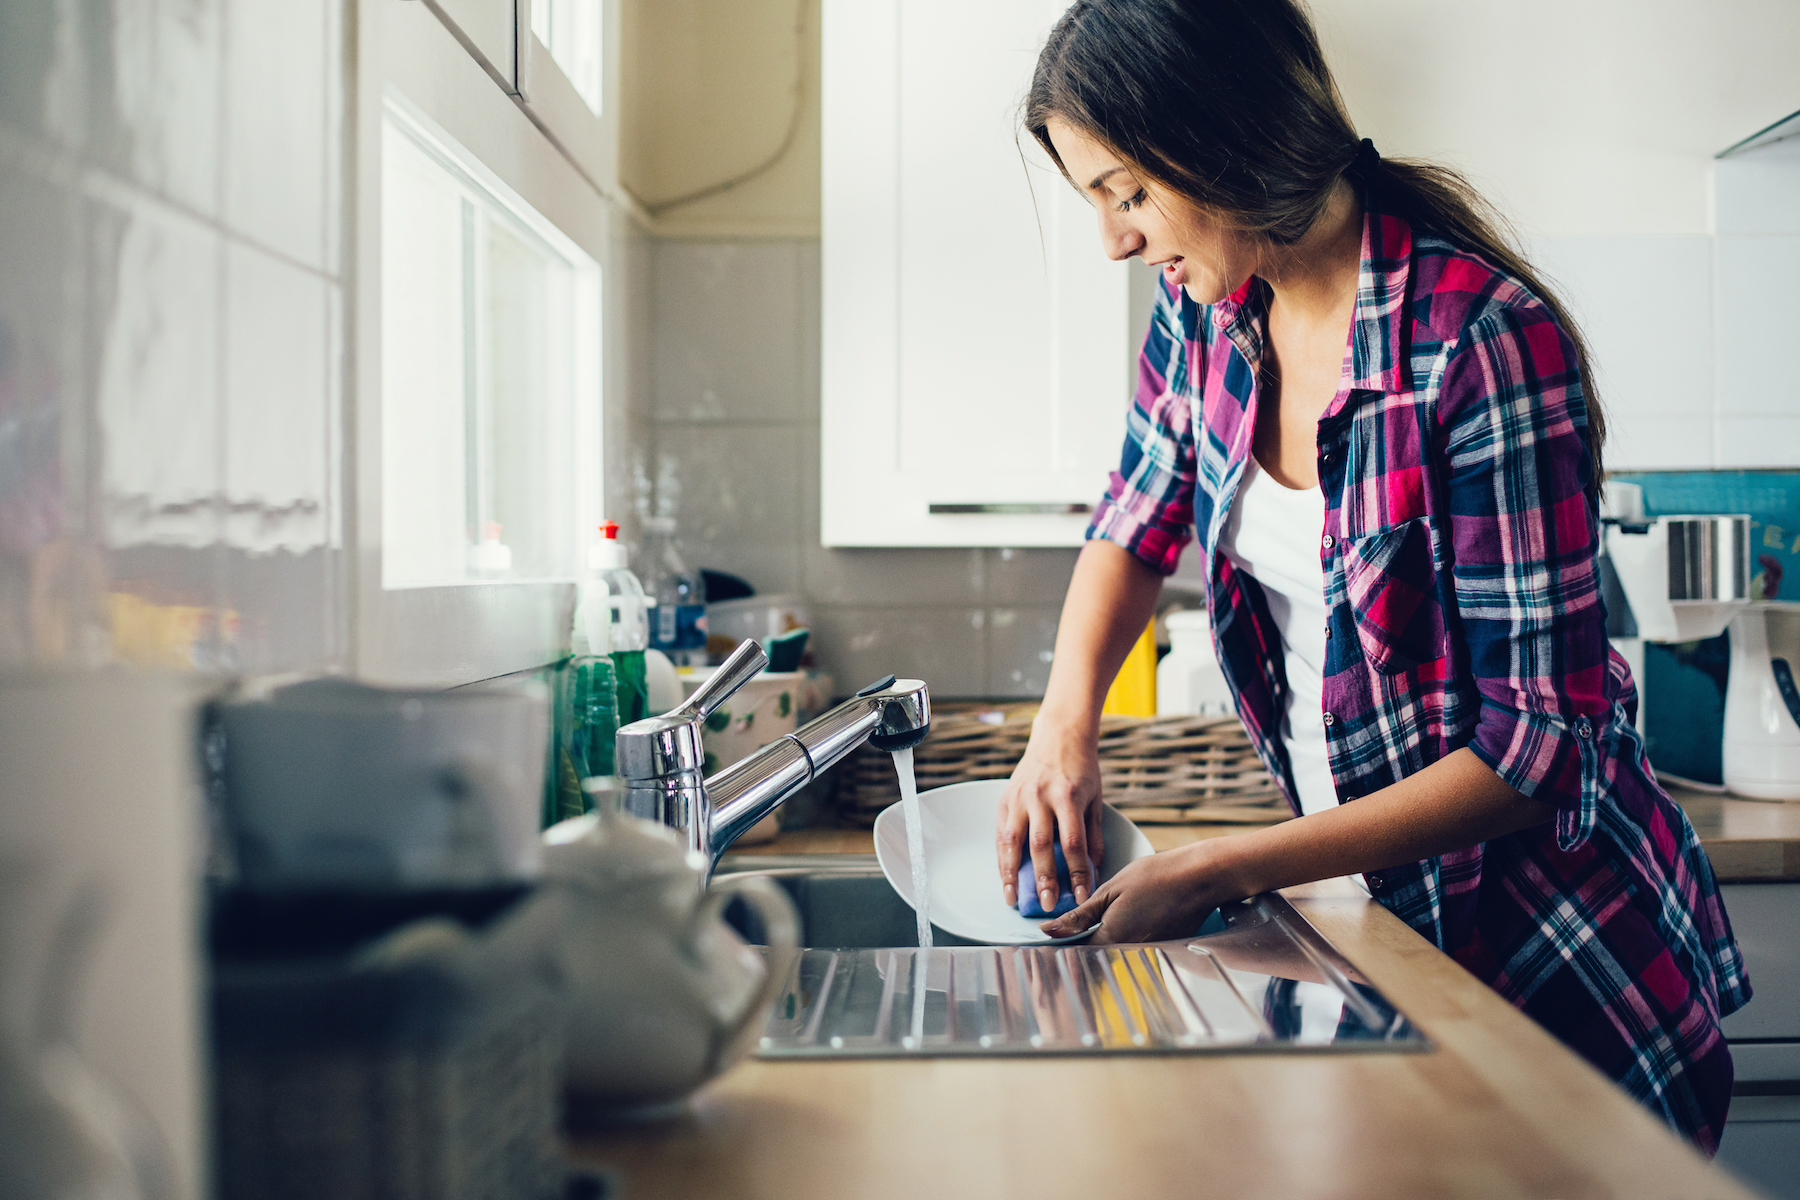 Woman doing dishes wearing button down